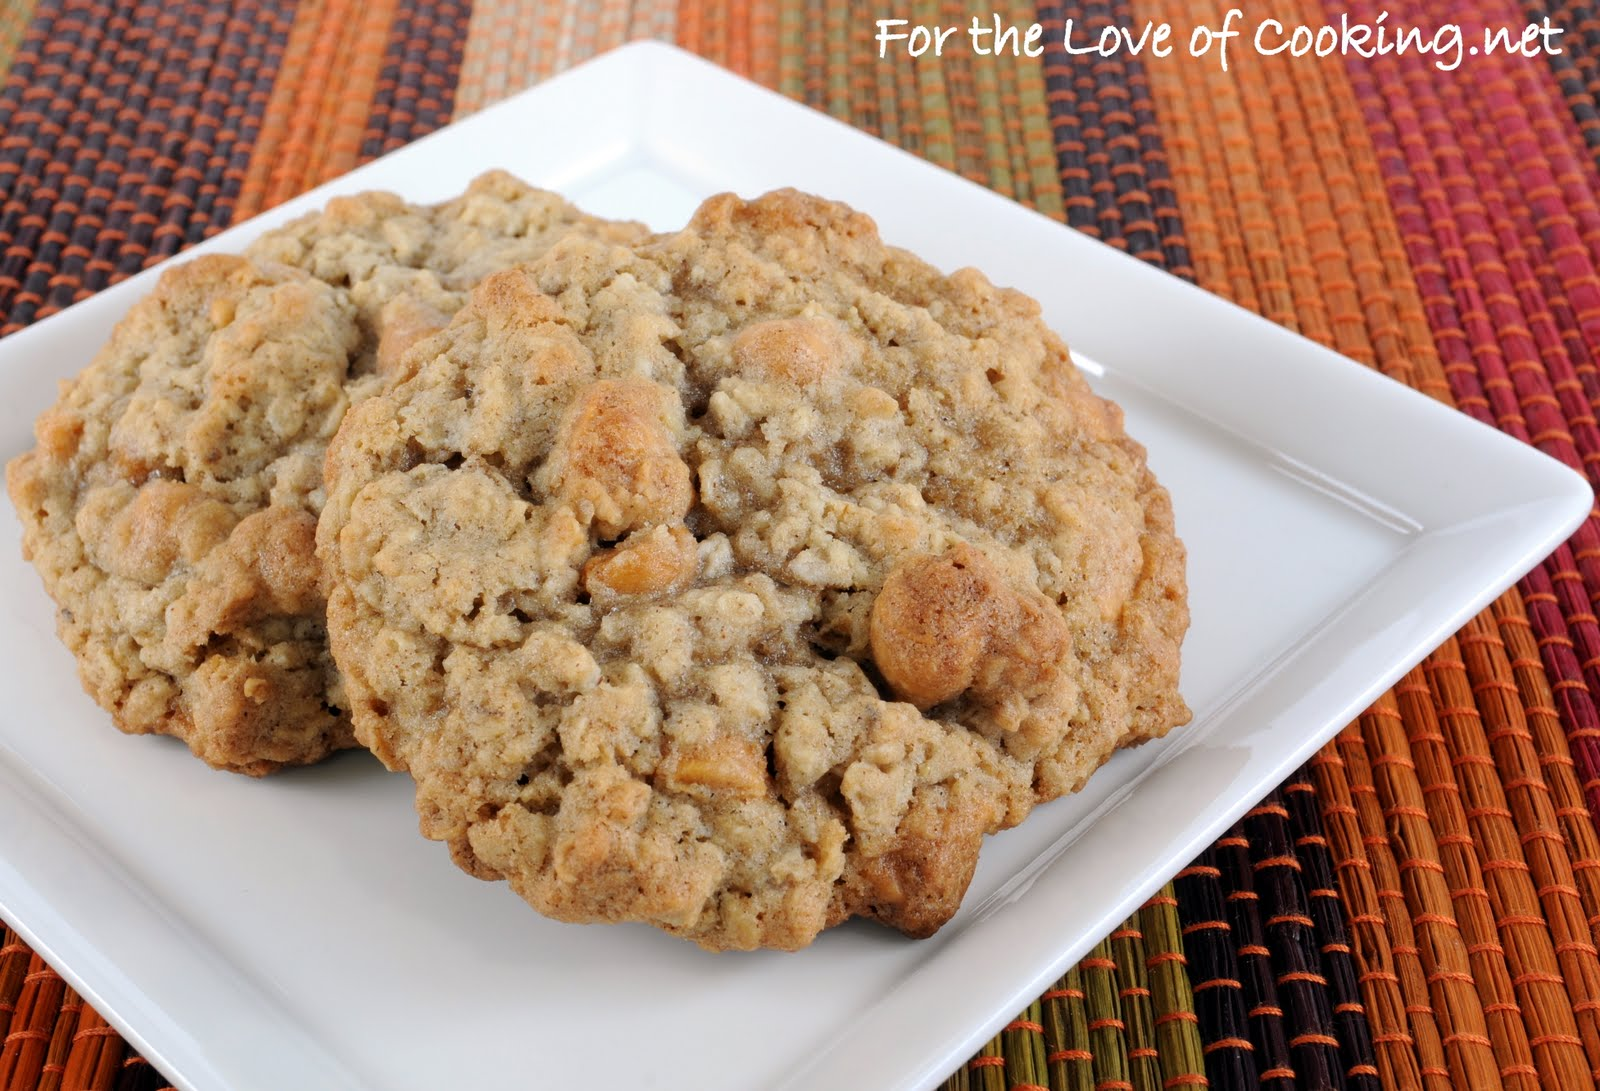 Oatmeal Butterscotch Cookies | For the Love of Cooking Oatmeal Butterscotch Cookies